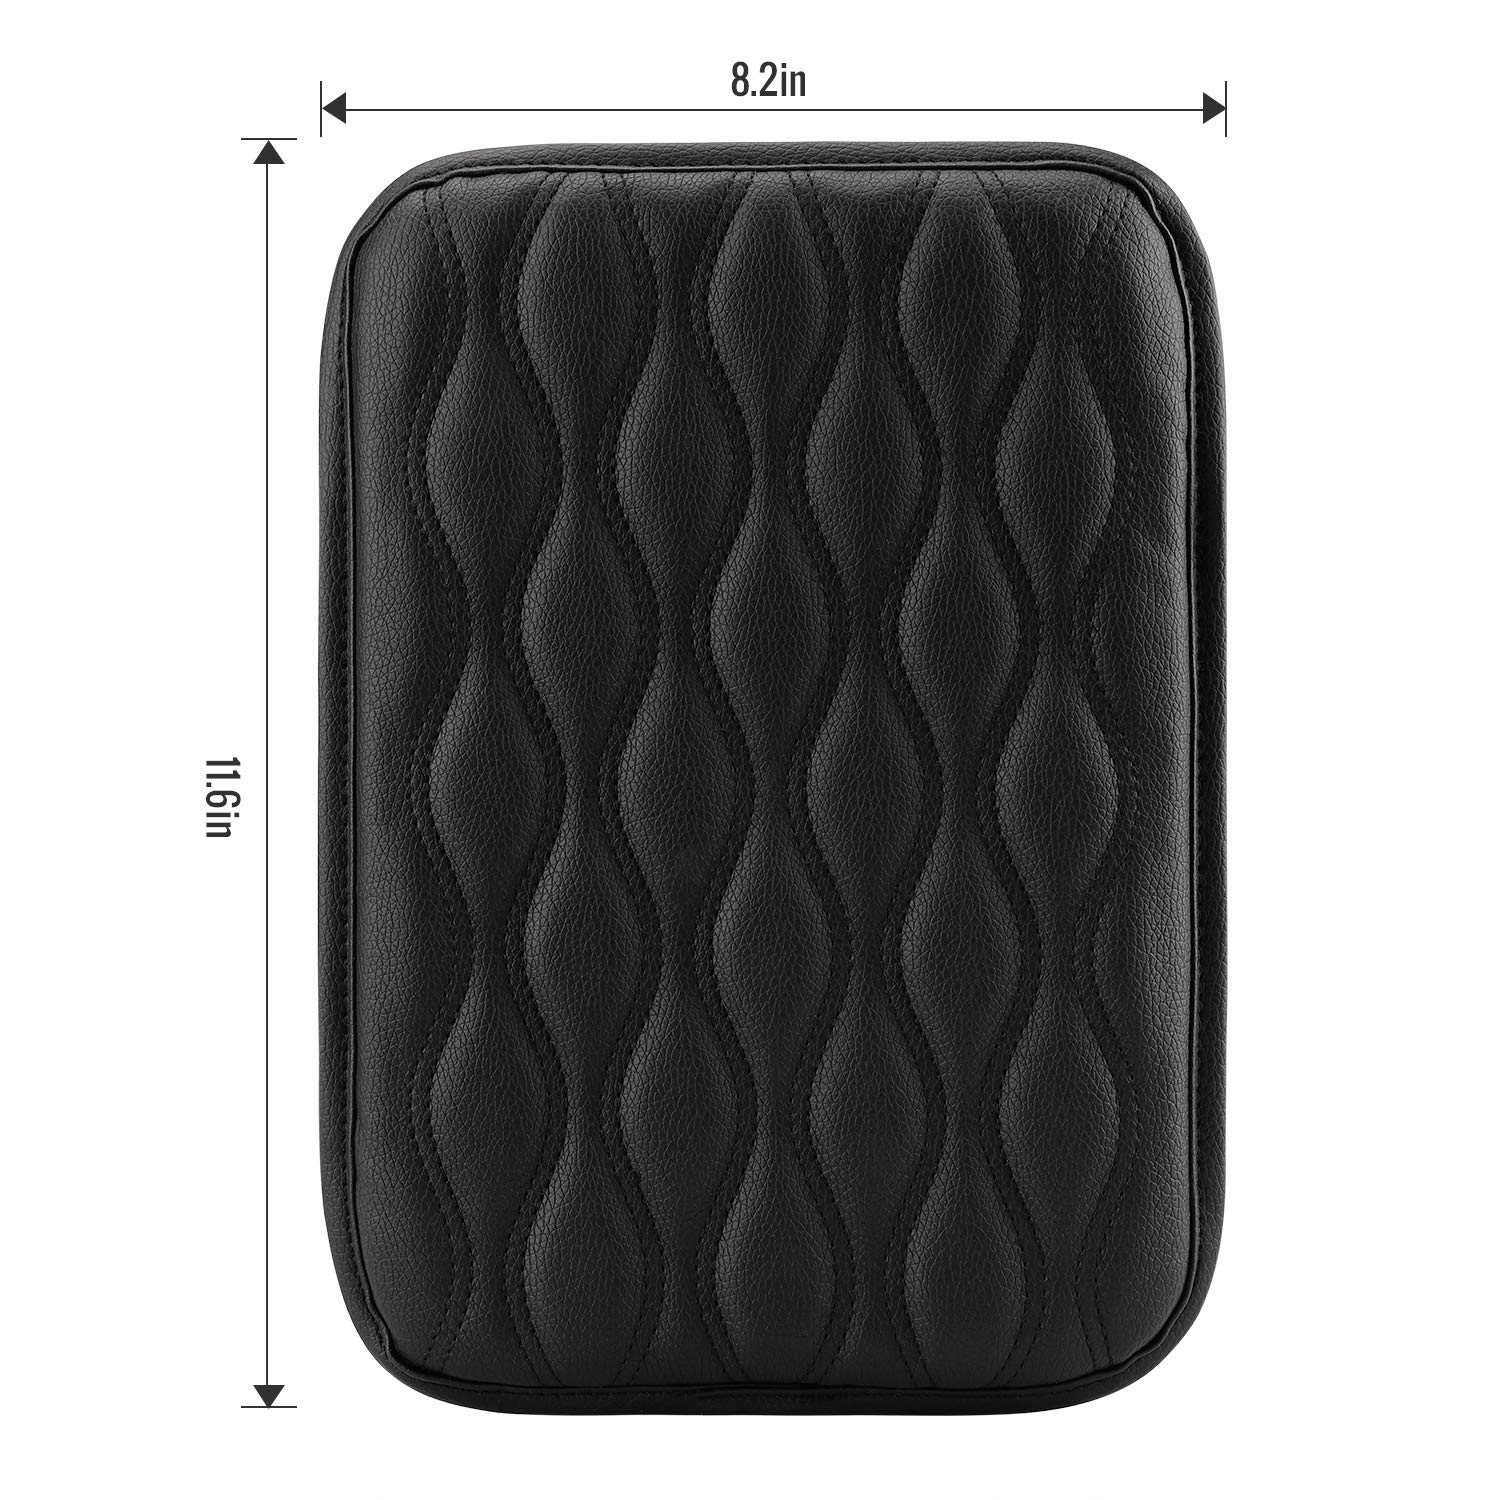 Seven Sparta Universal Center Console Cover for Most Vehicle, SUV, Truck, Car, Waterproof Armrest Cover Center Console Pad, Car Armrest Seat Box Cover Protector(Black)